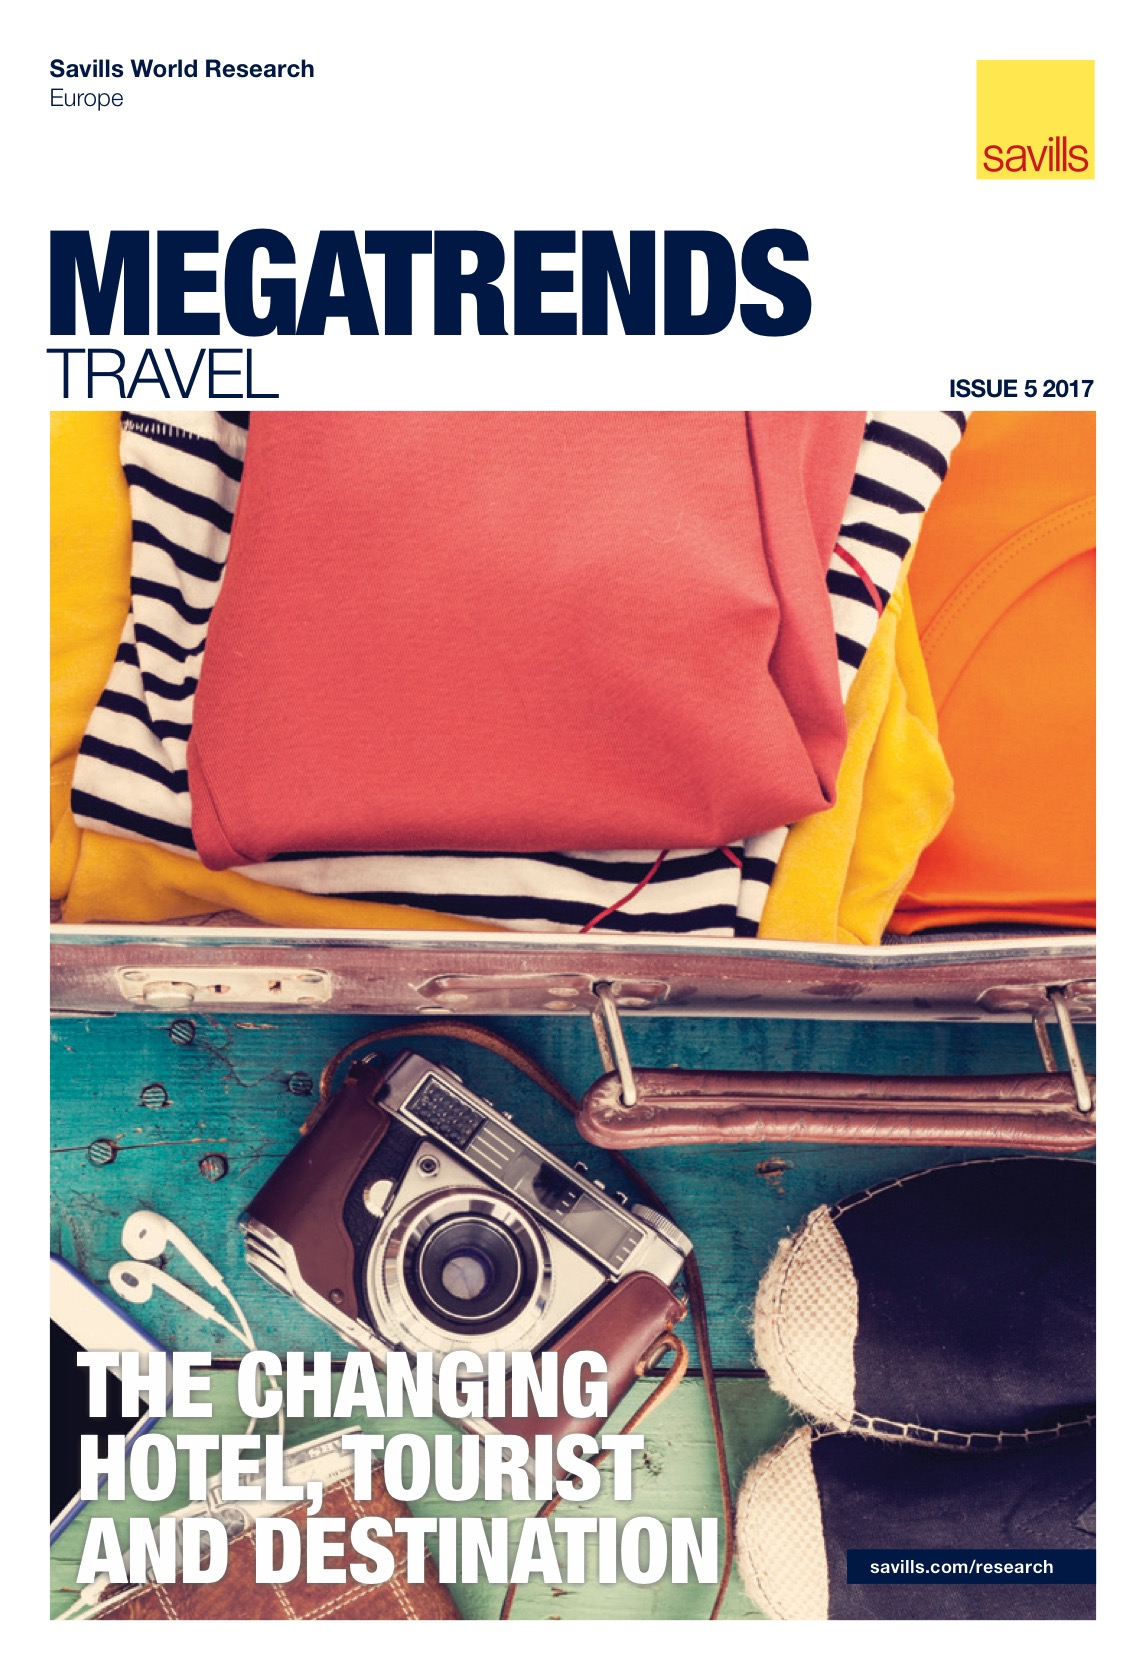 Savills - Europe Megatrends Travel – Issue 5 2017